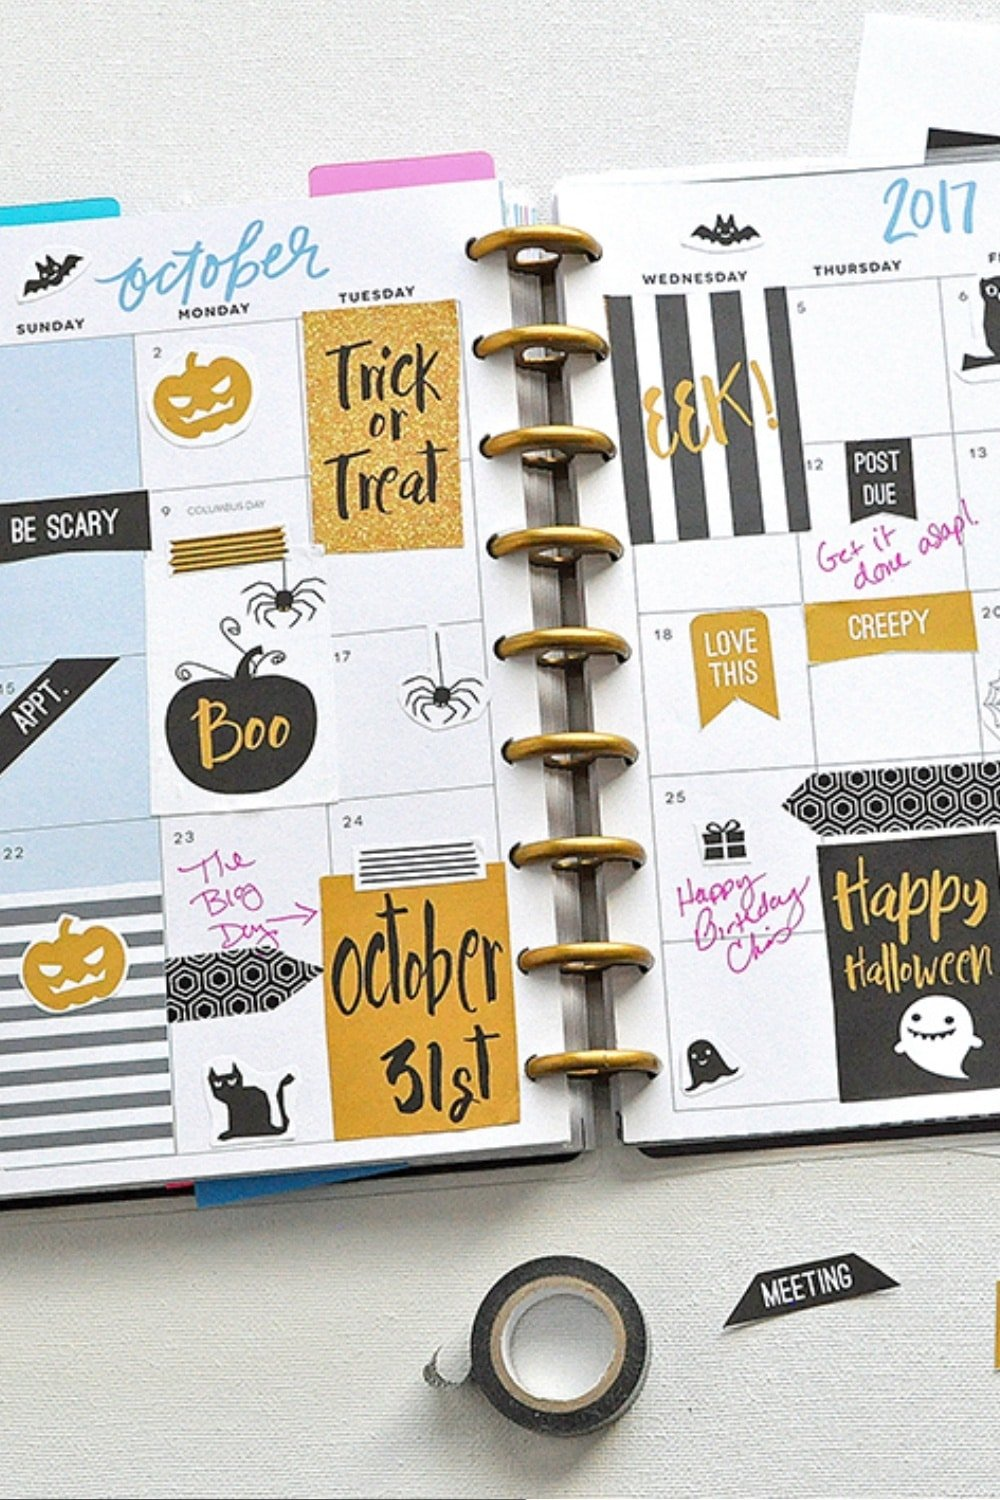 October Halloween FREE Printable Planner Stickers